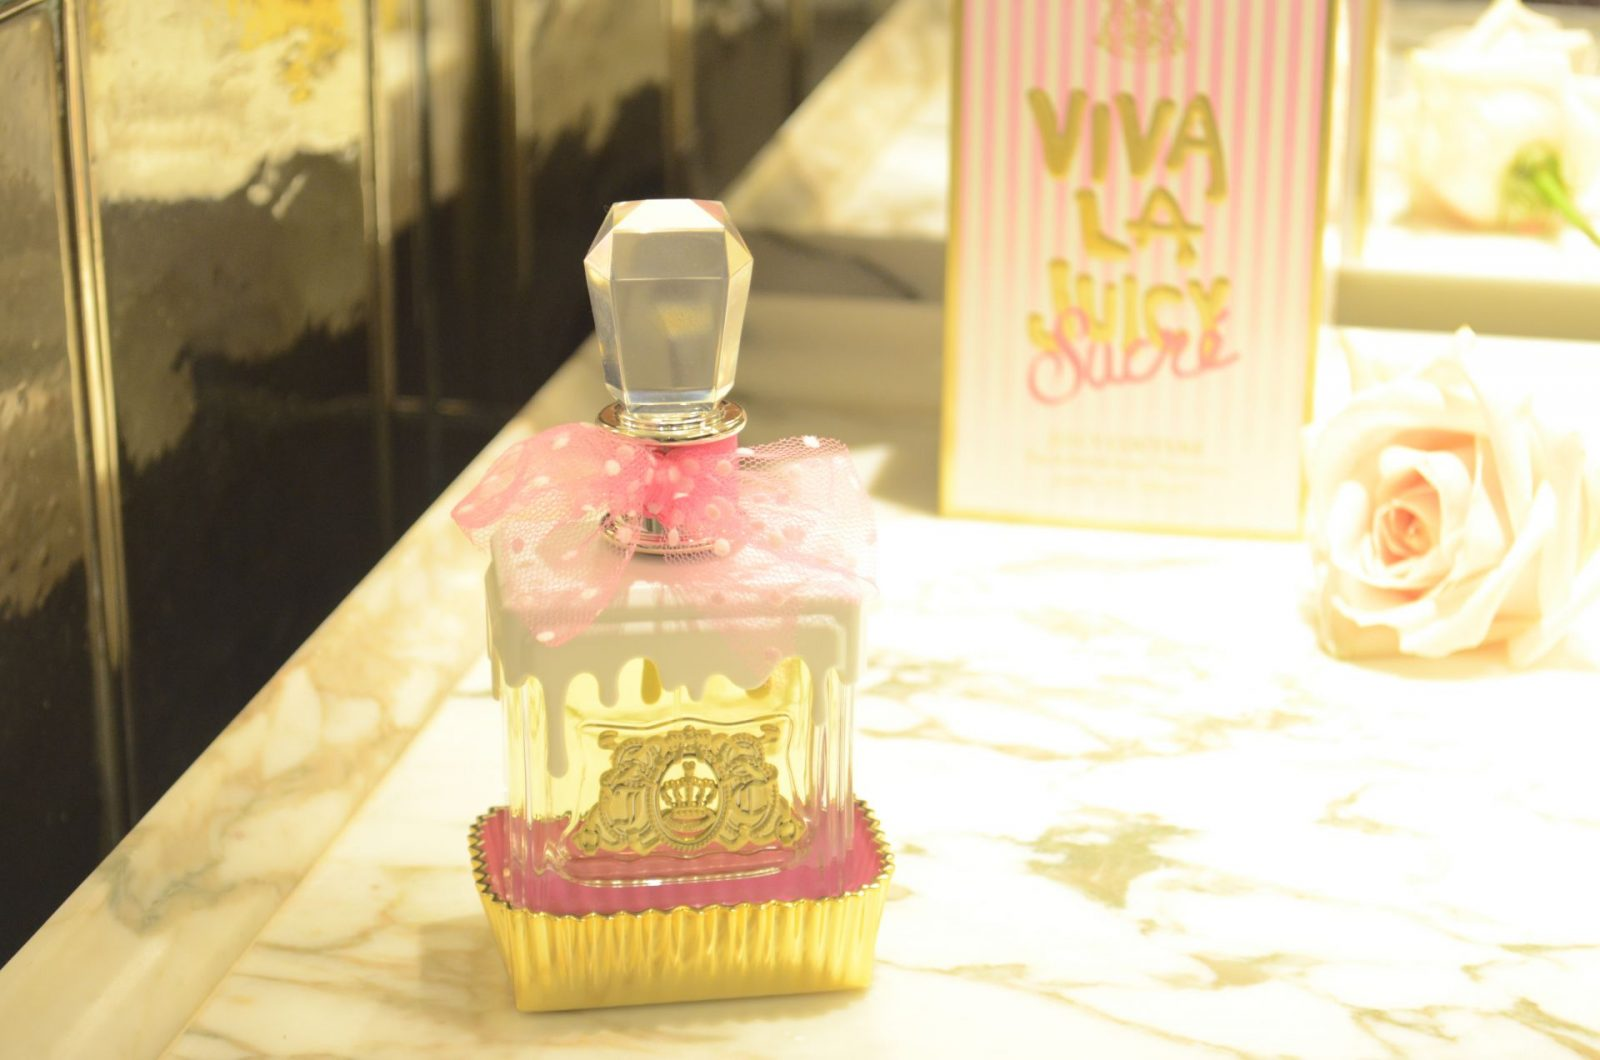 juicy-couture-viva-la-juicy